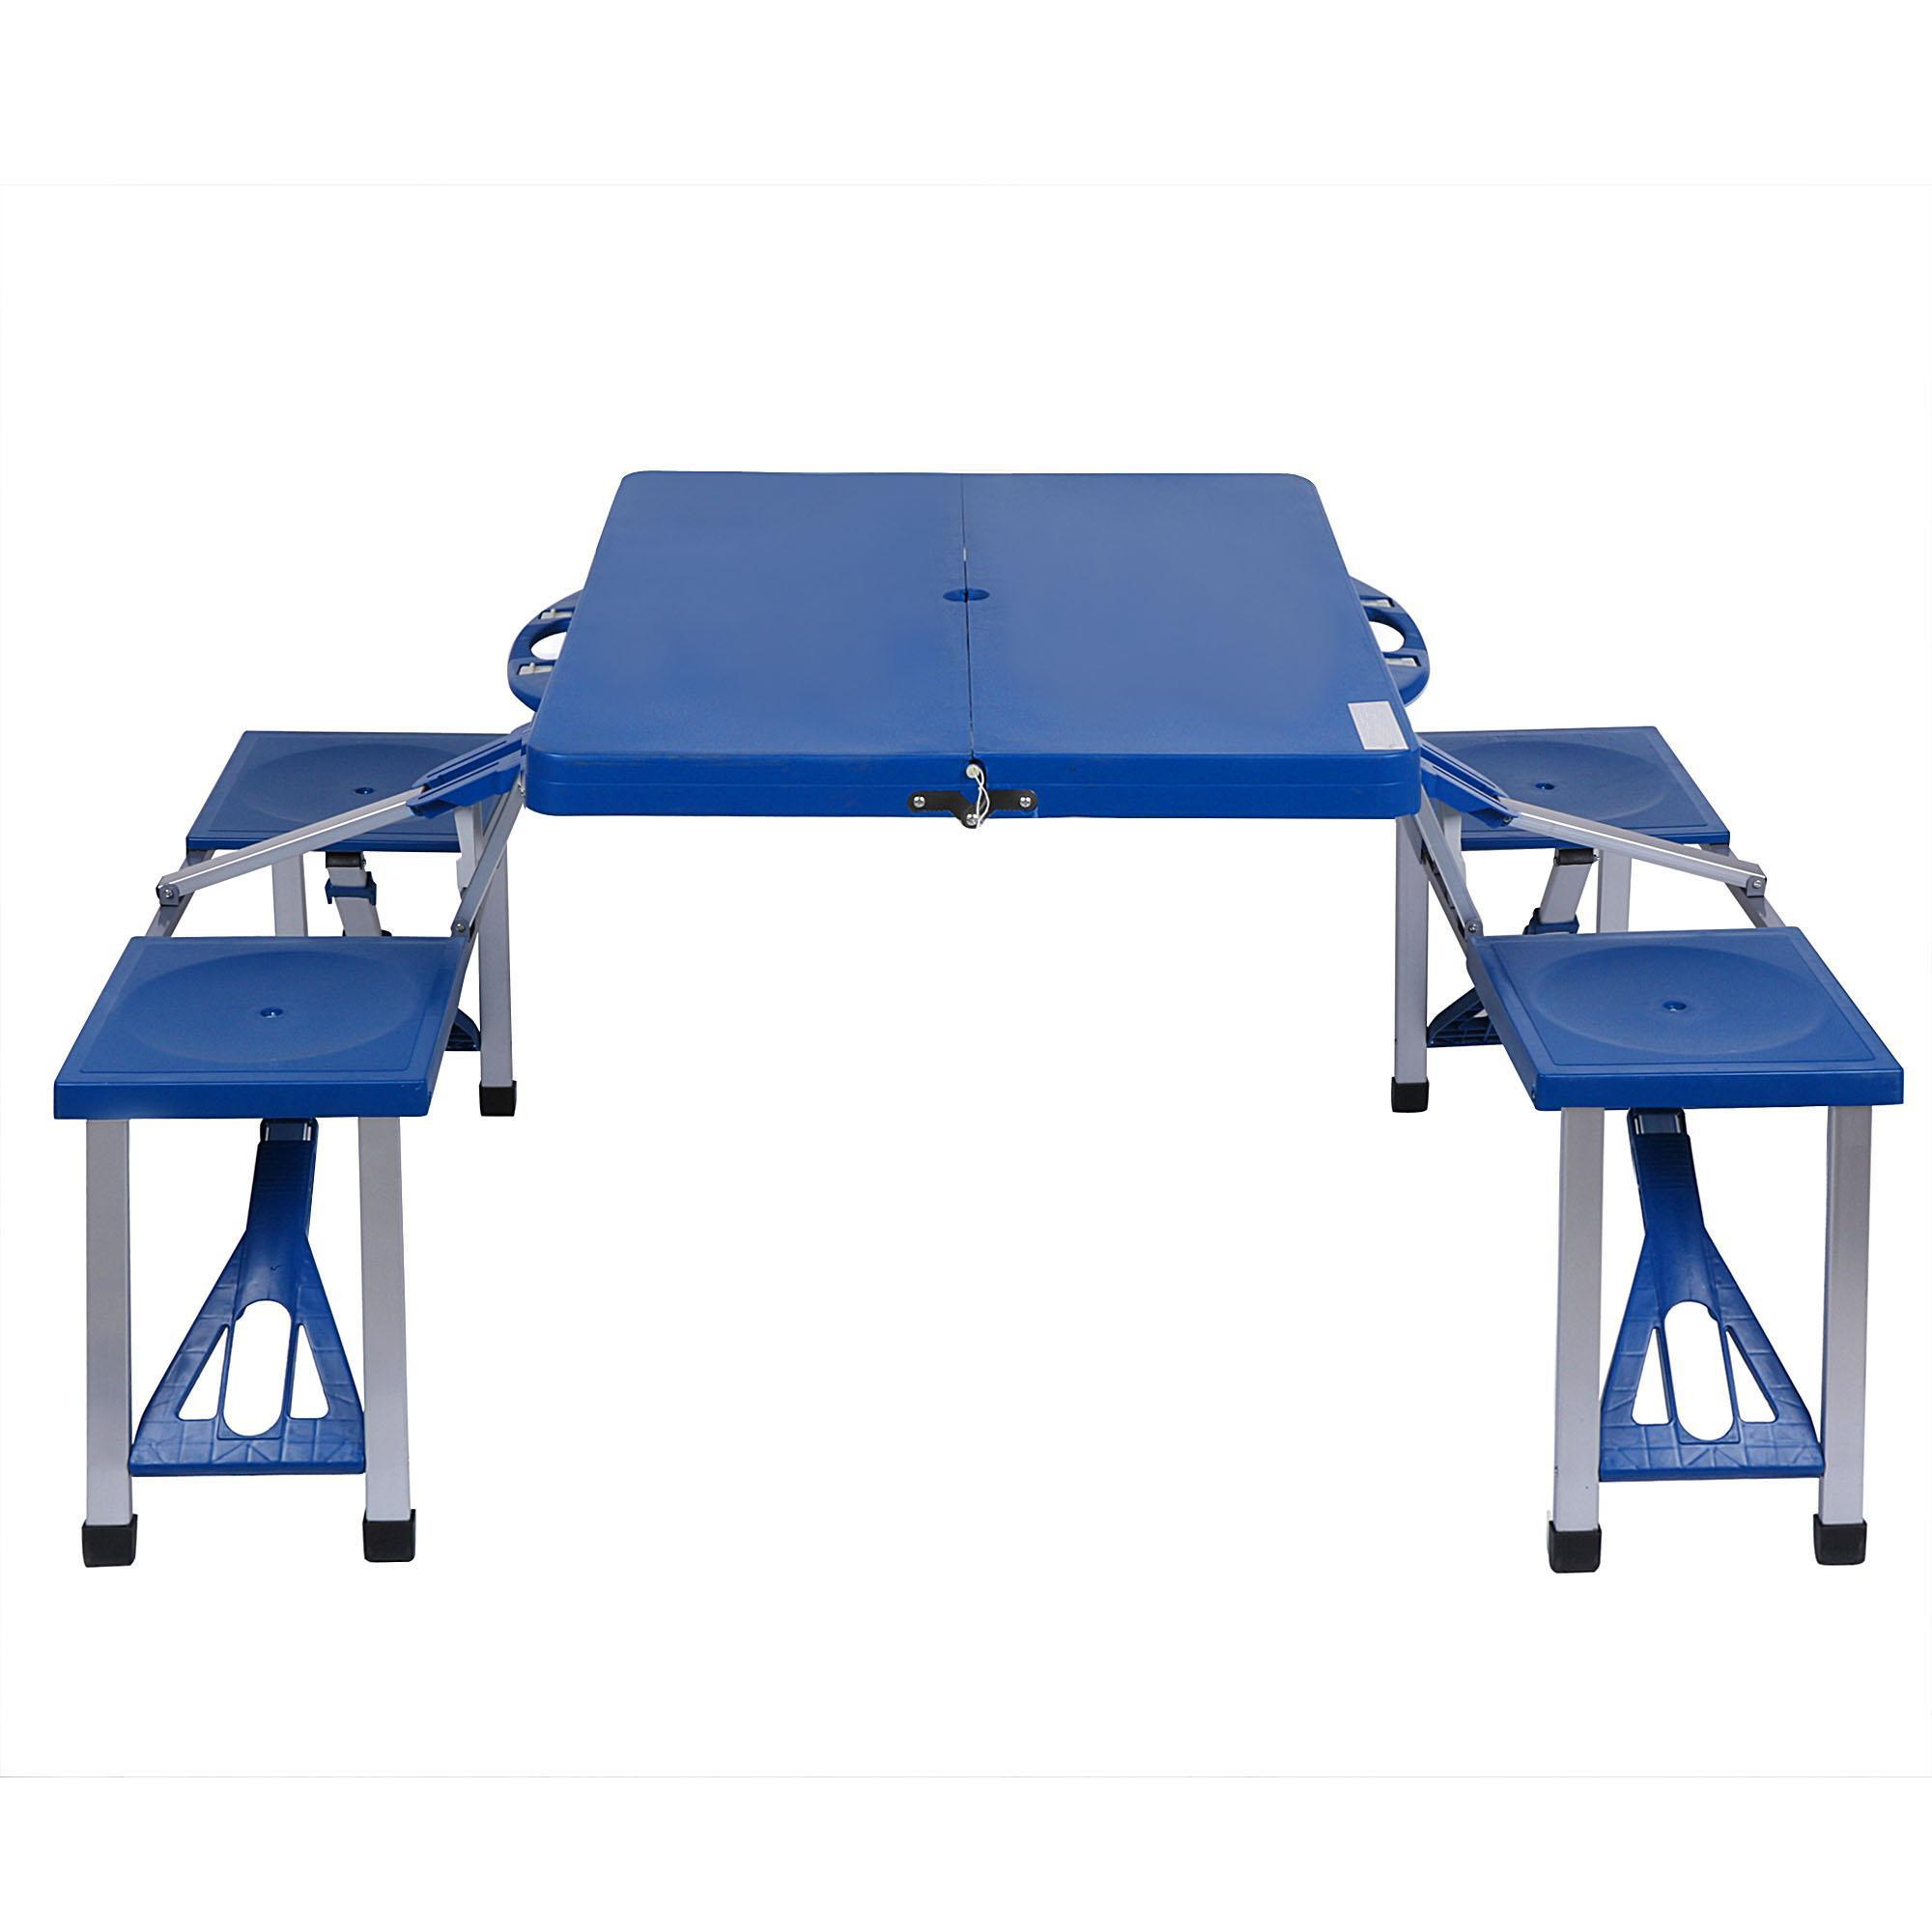 Portable Folding Outdoor Camp Suitcase Picnic Table with 4 Seats 0